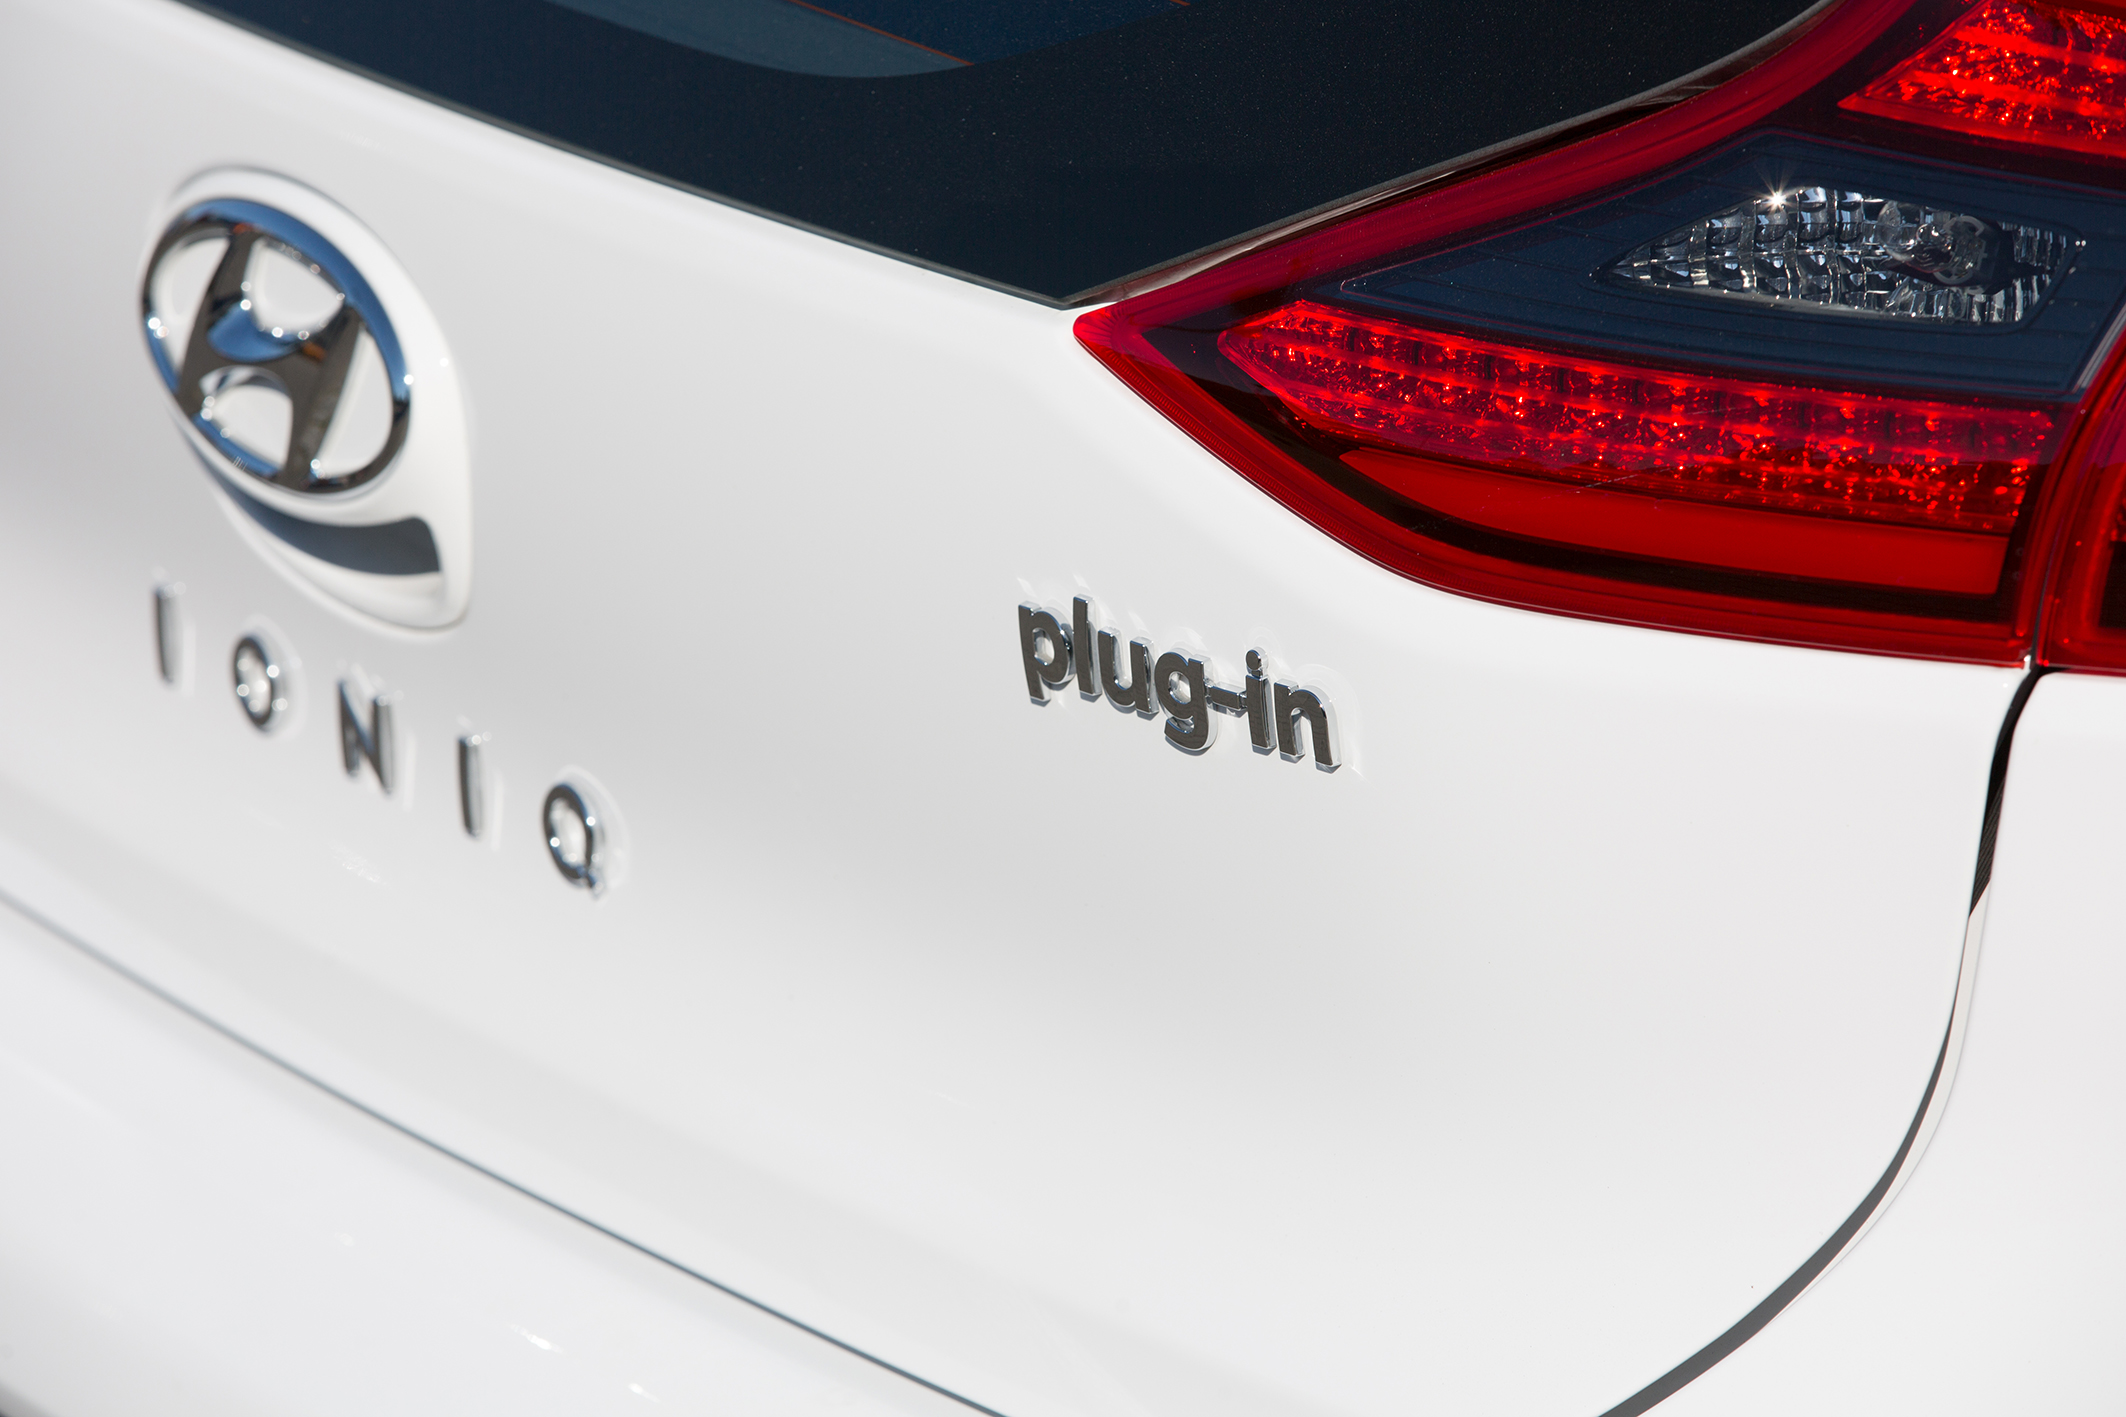 """, Infineon first chipmaker to be named """"Partner of The Year"""" by Hyundai for cooperation in electro-mobility"""